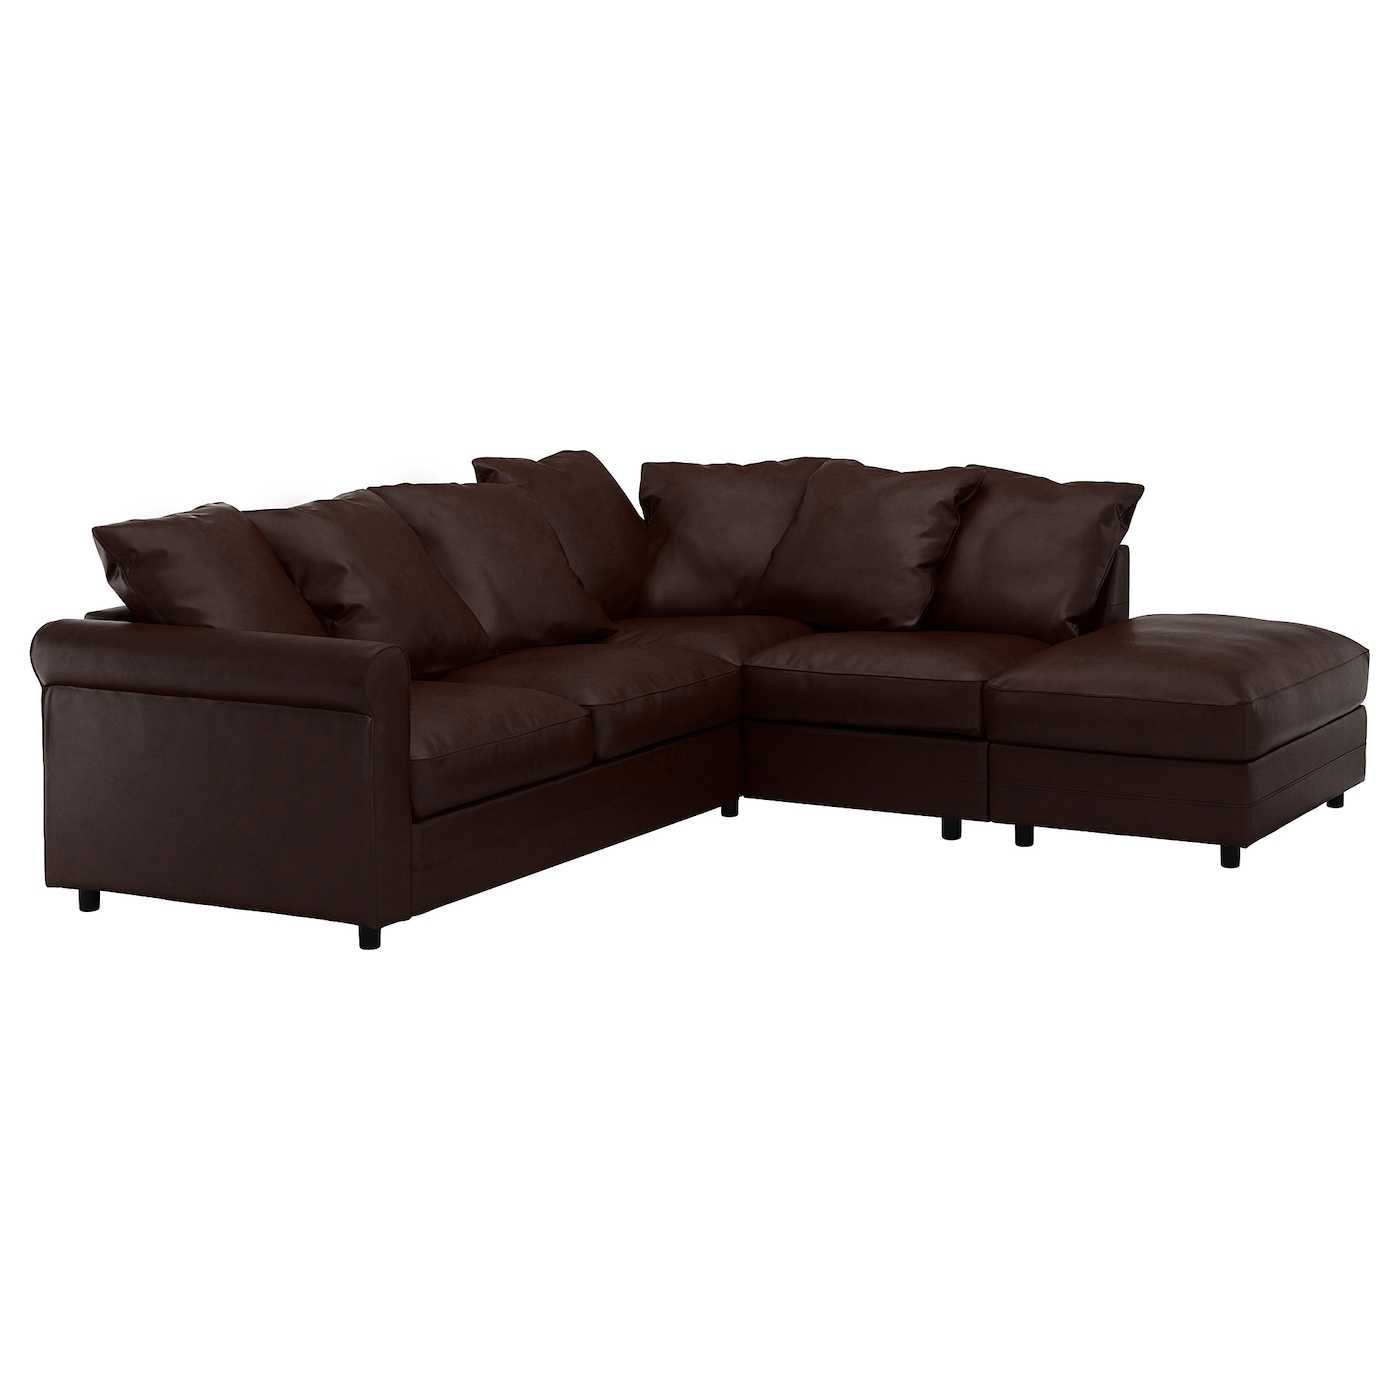 IKEA GRÖNLID corner sofa, 4-seat 10 year guarantee. Read about the terms in the guarantee brochure.